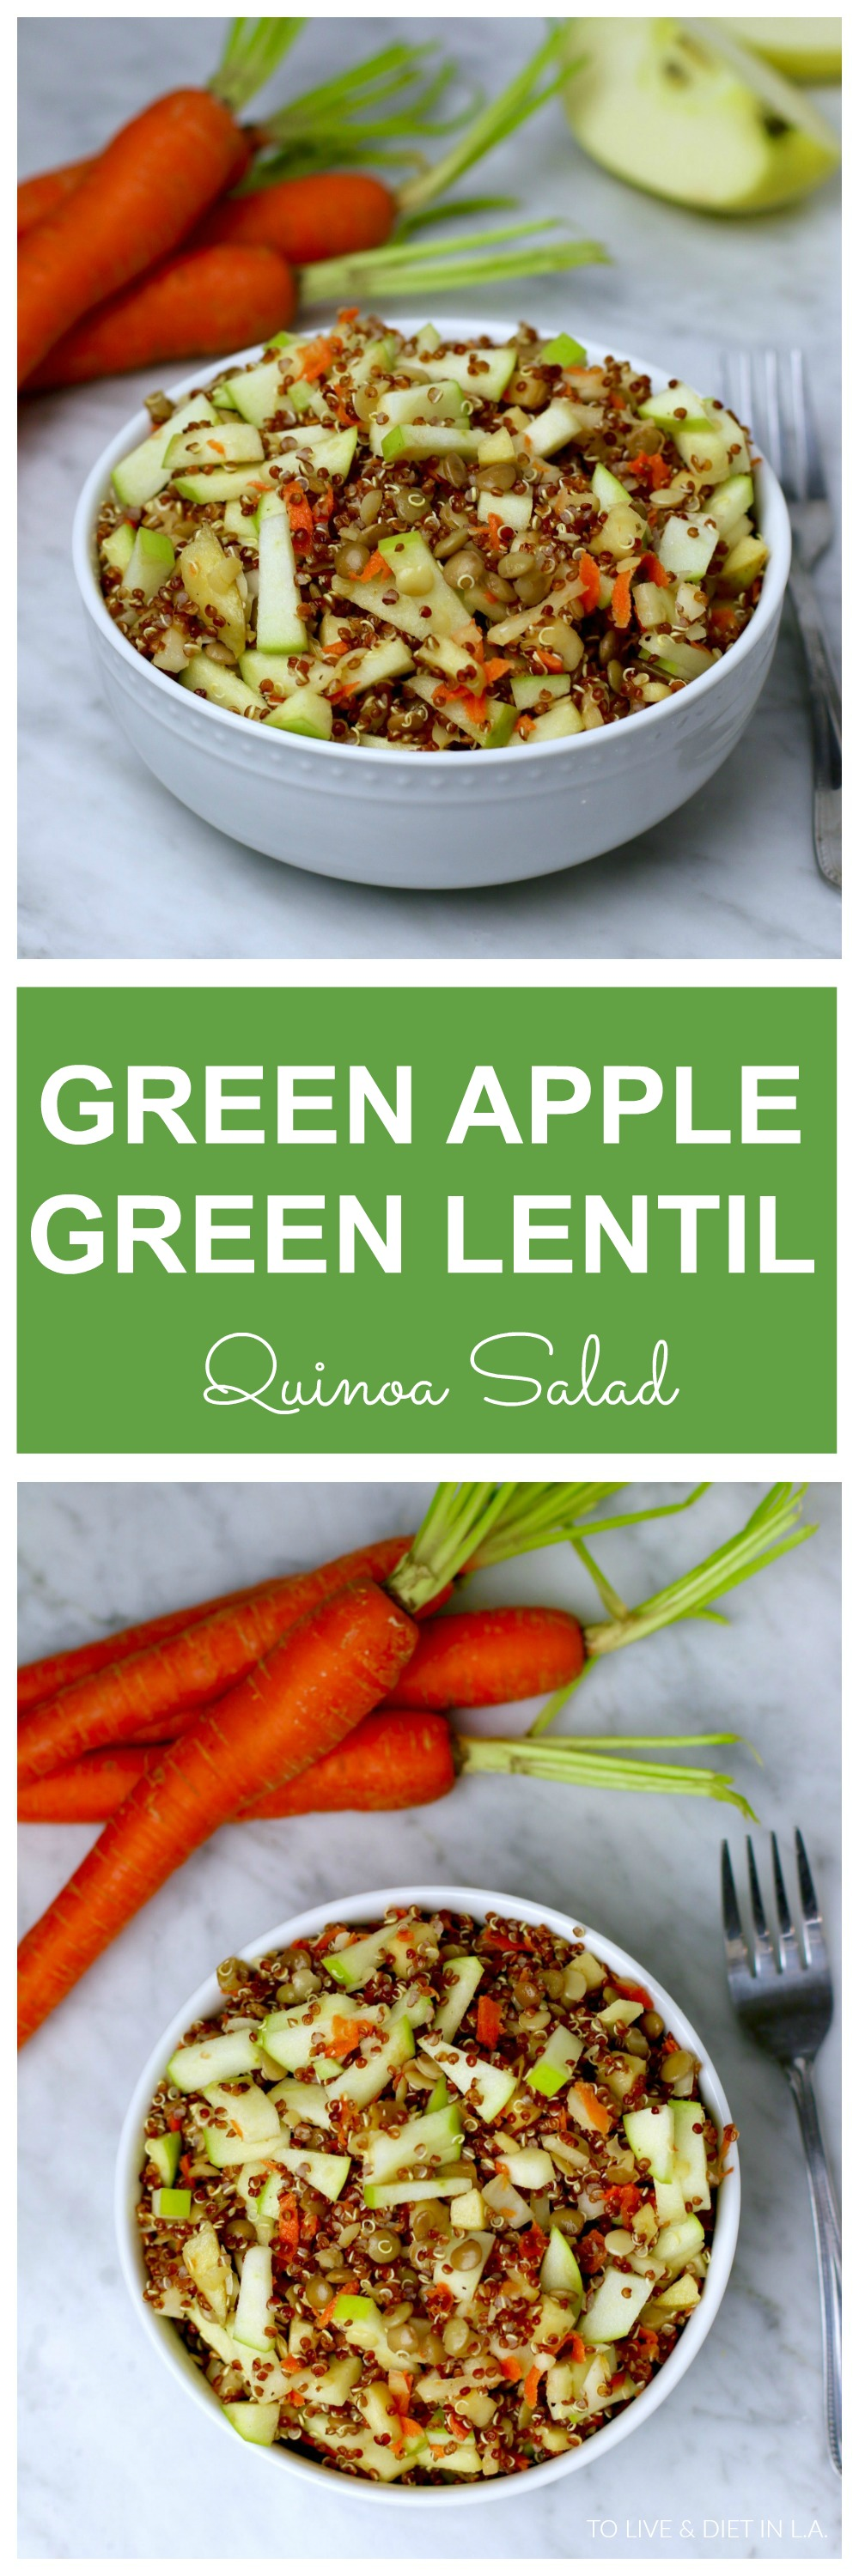 Green Apple Green Lentil Quinoa Salad